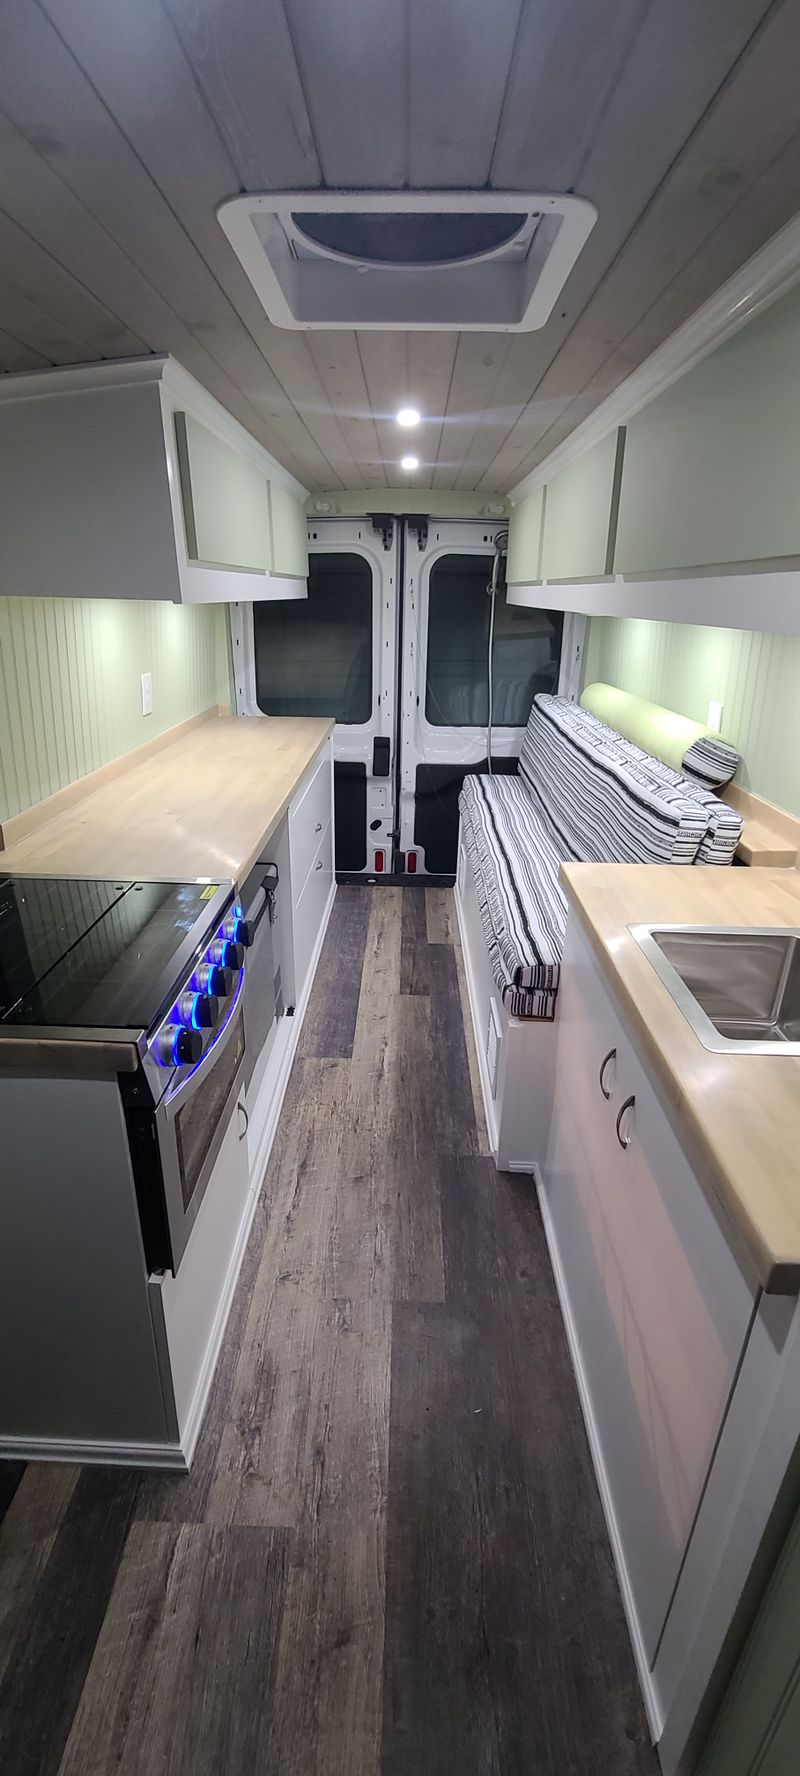 Picture 2/16 of a 2019 Ford Transit 250 (2021 Converstion) $63500 for sale in Lapeer, Michigan